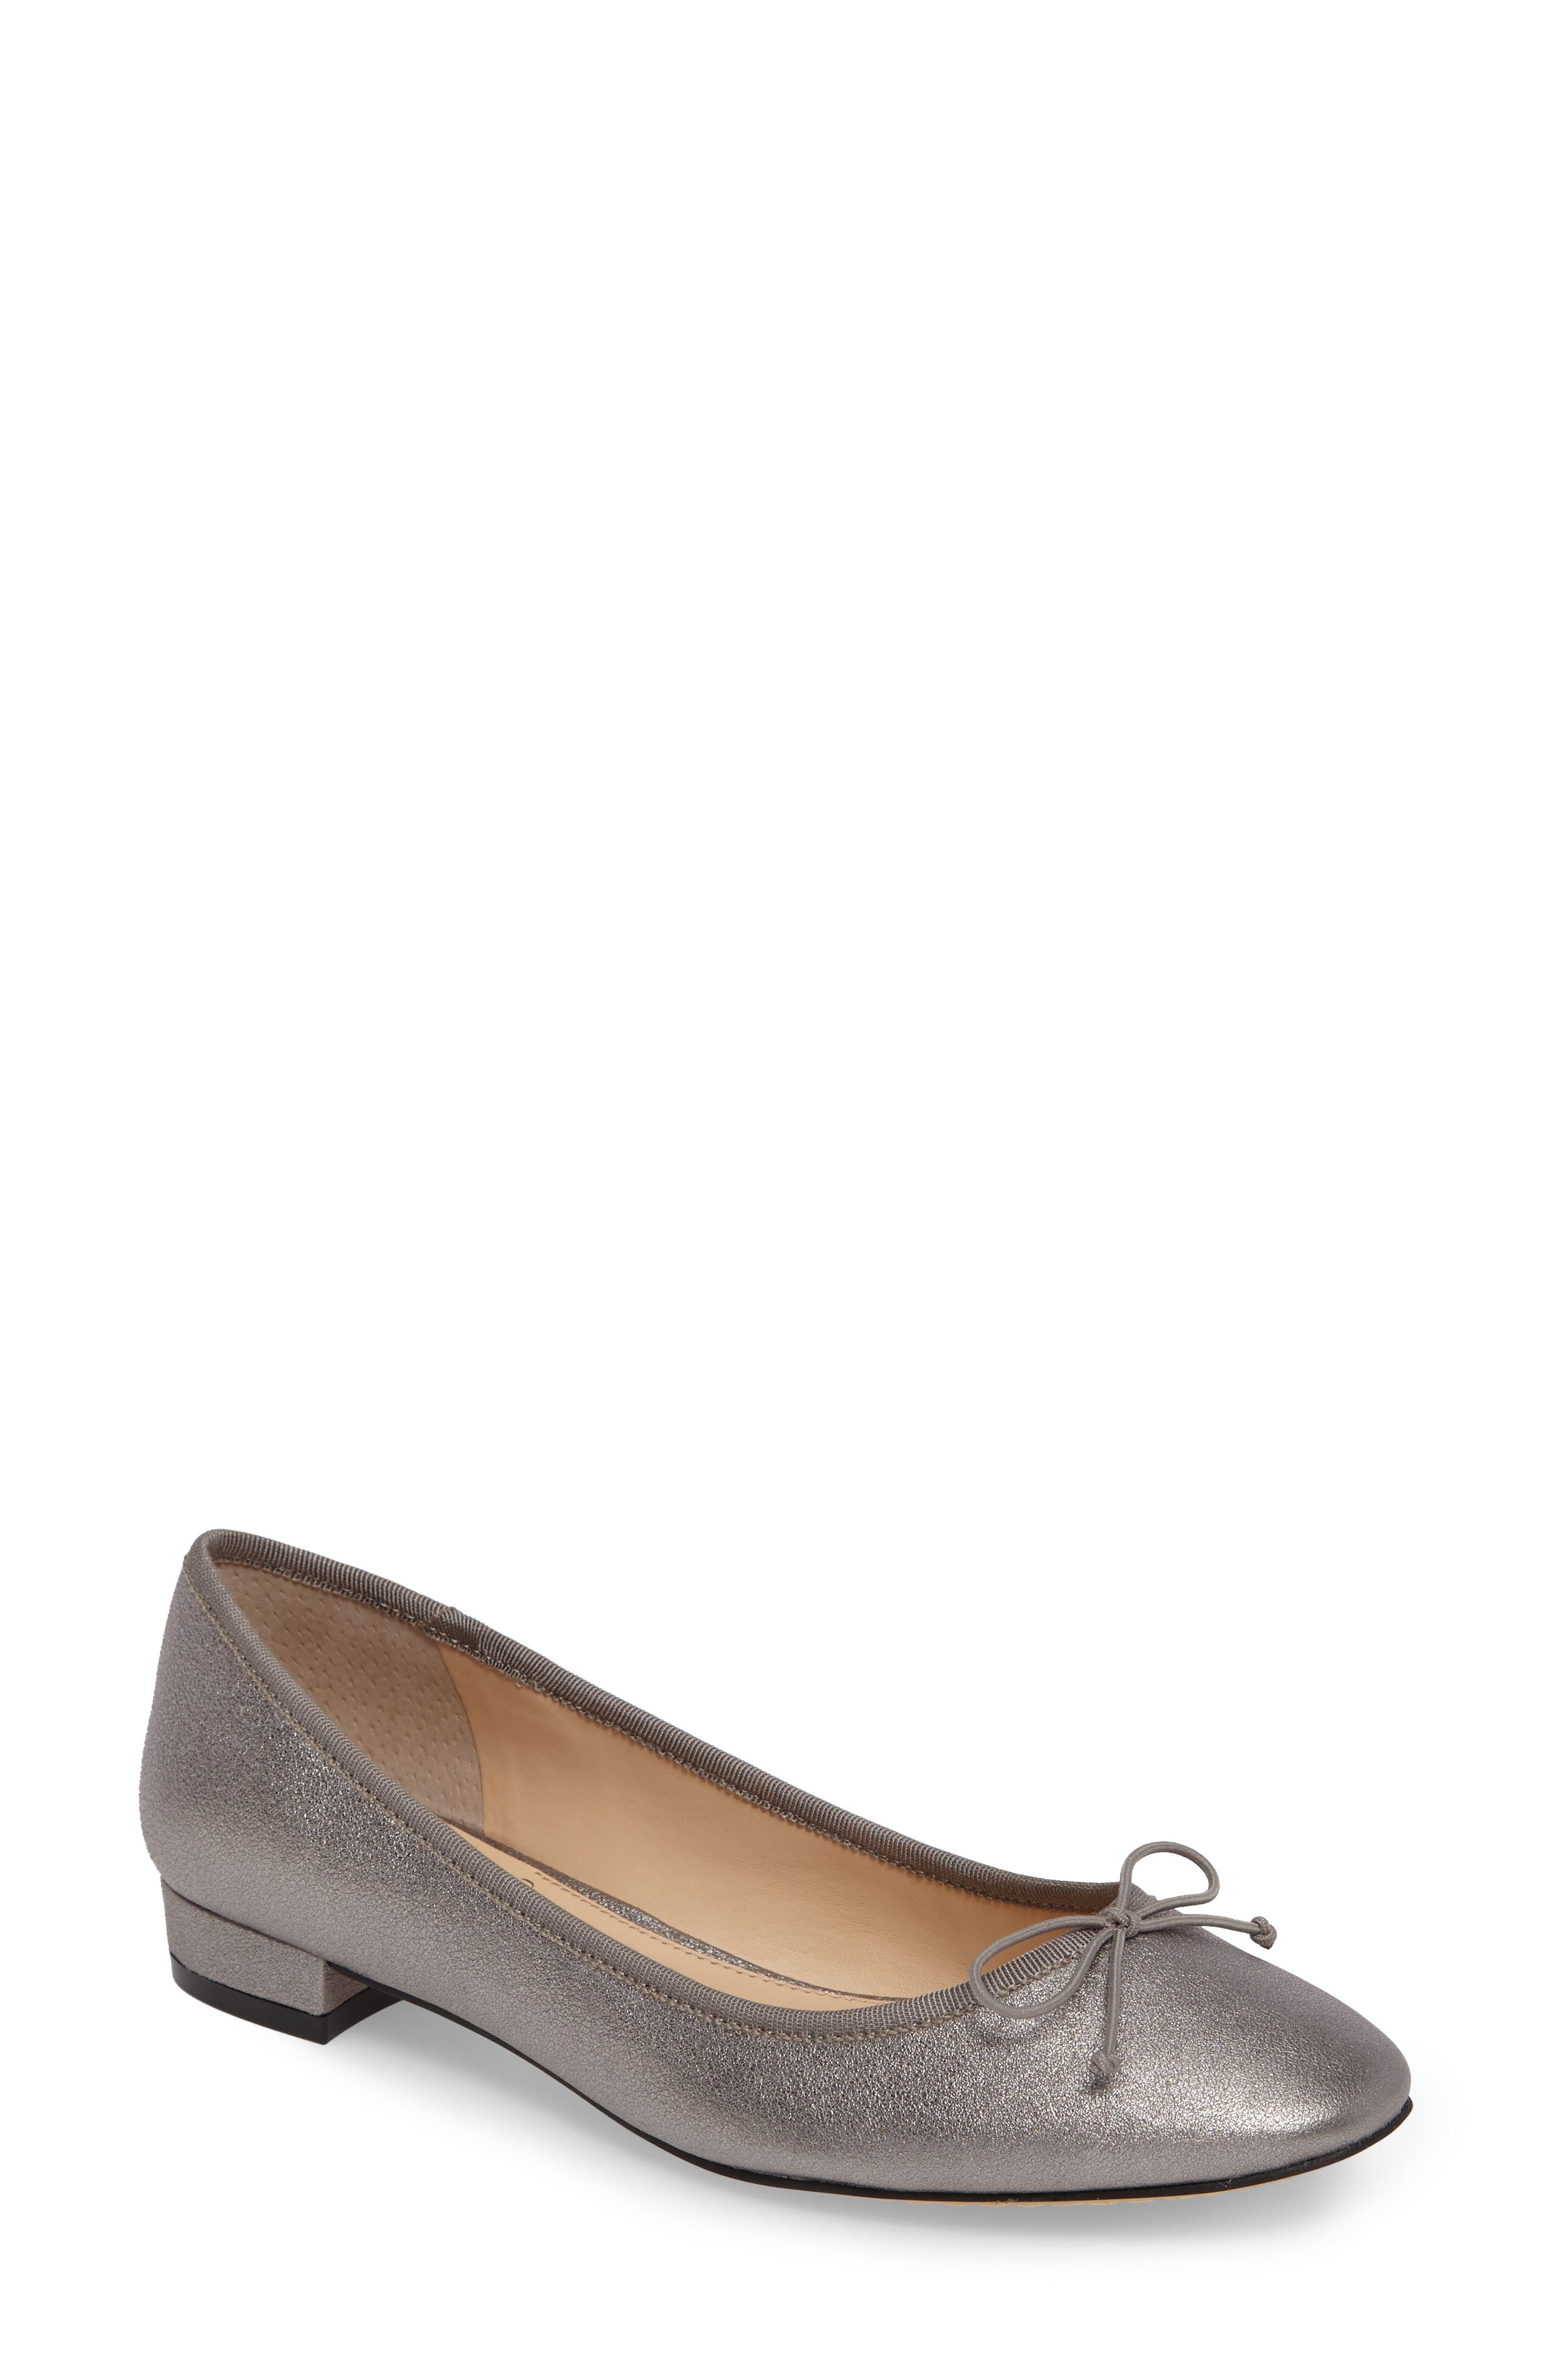 Adema Flat,                         Main,                         color, Gunmetal Patent Leather